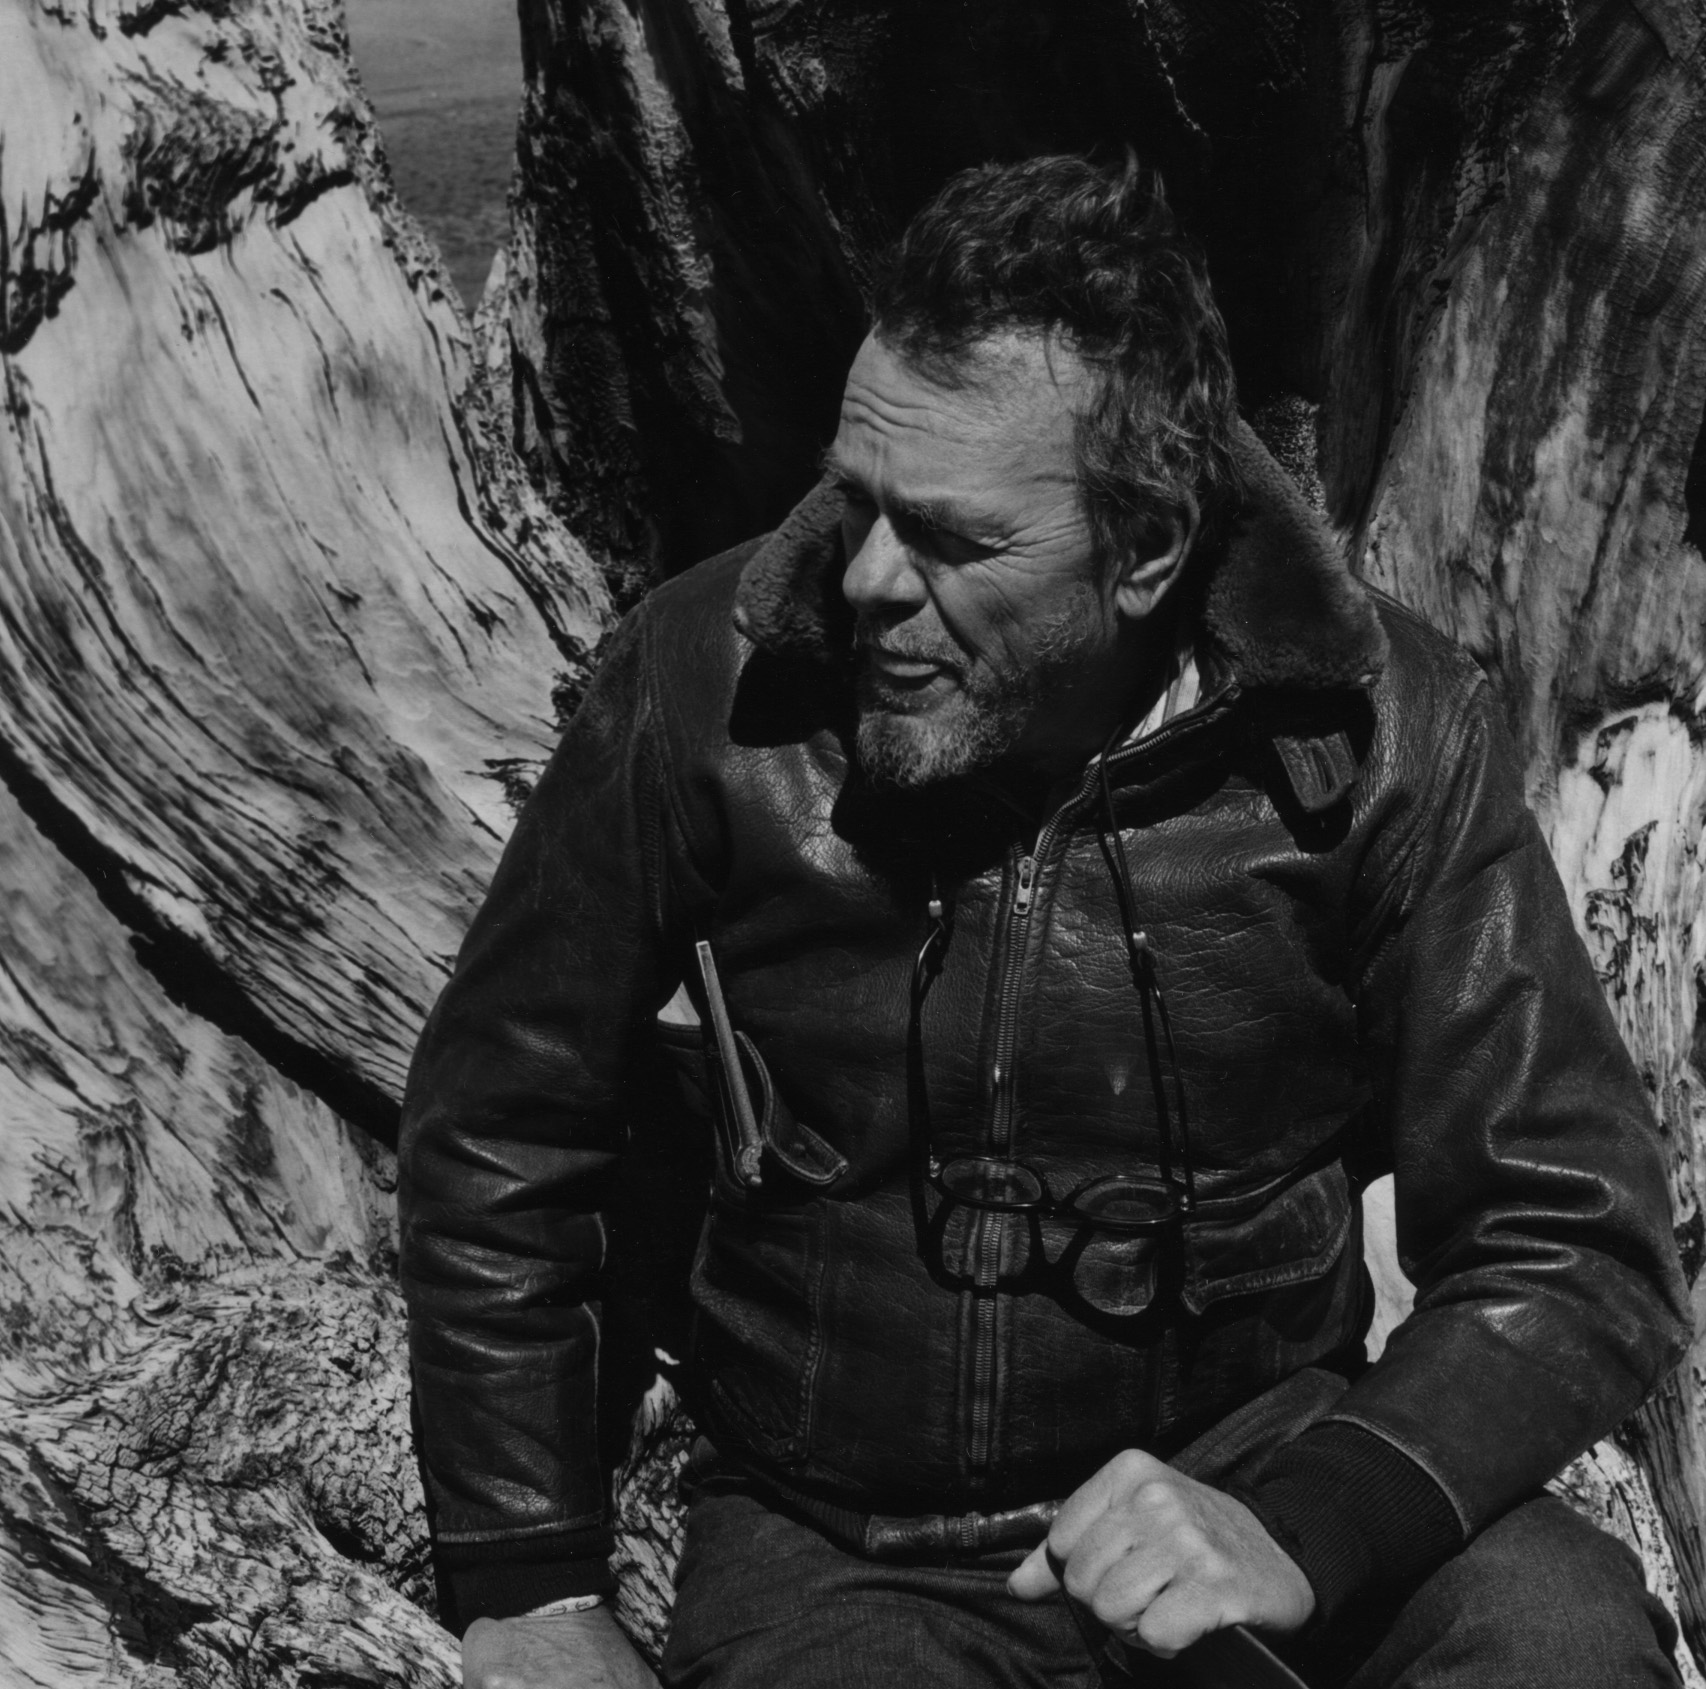 Man with a leather jacket sitting infront of an old bristle cone pine trunk